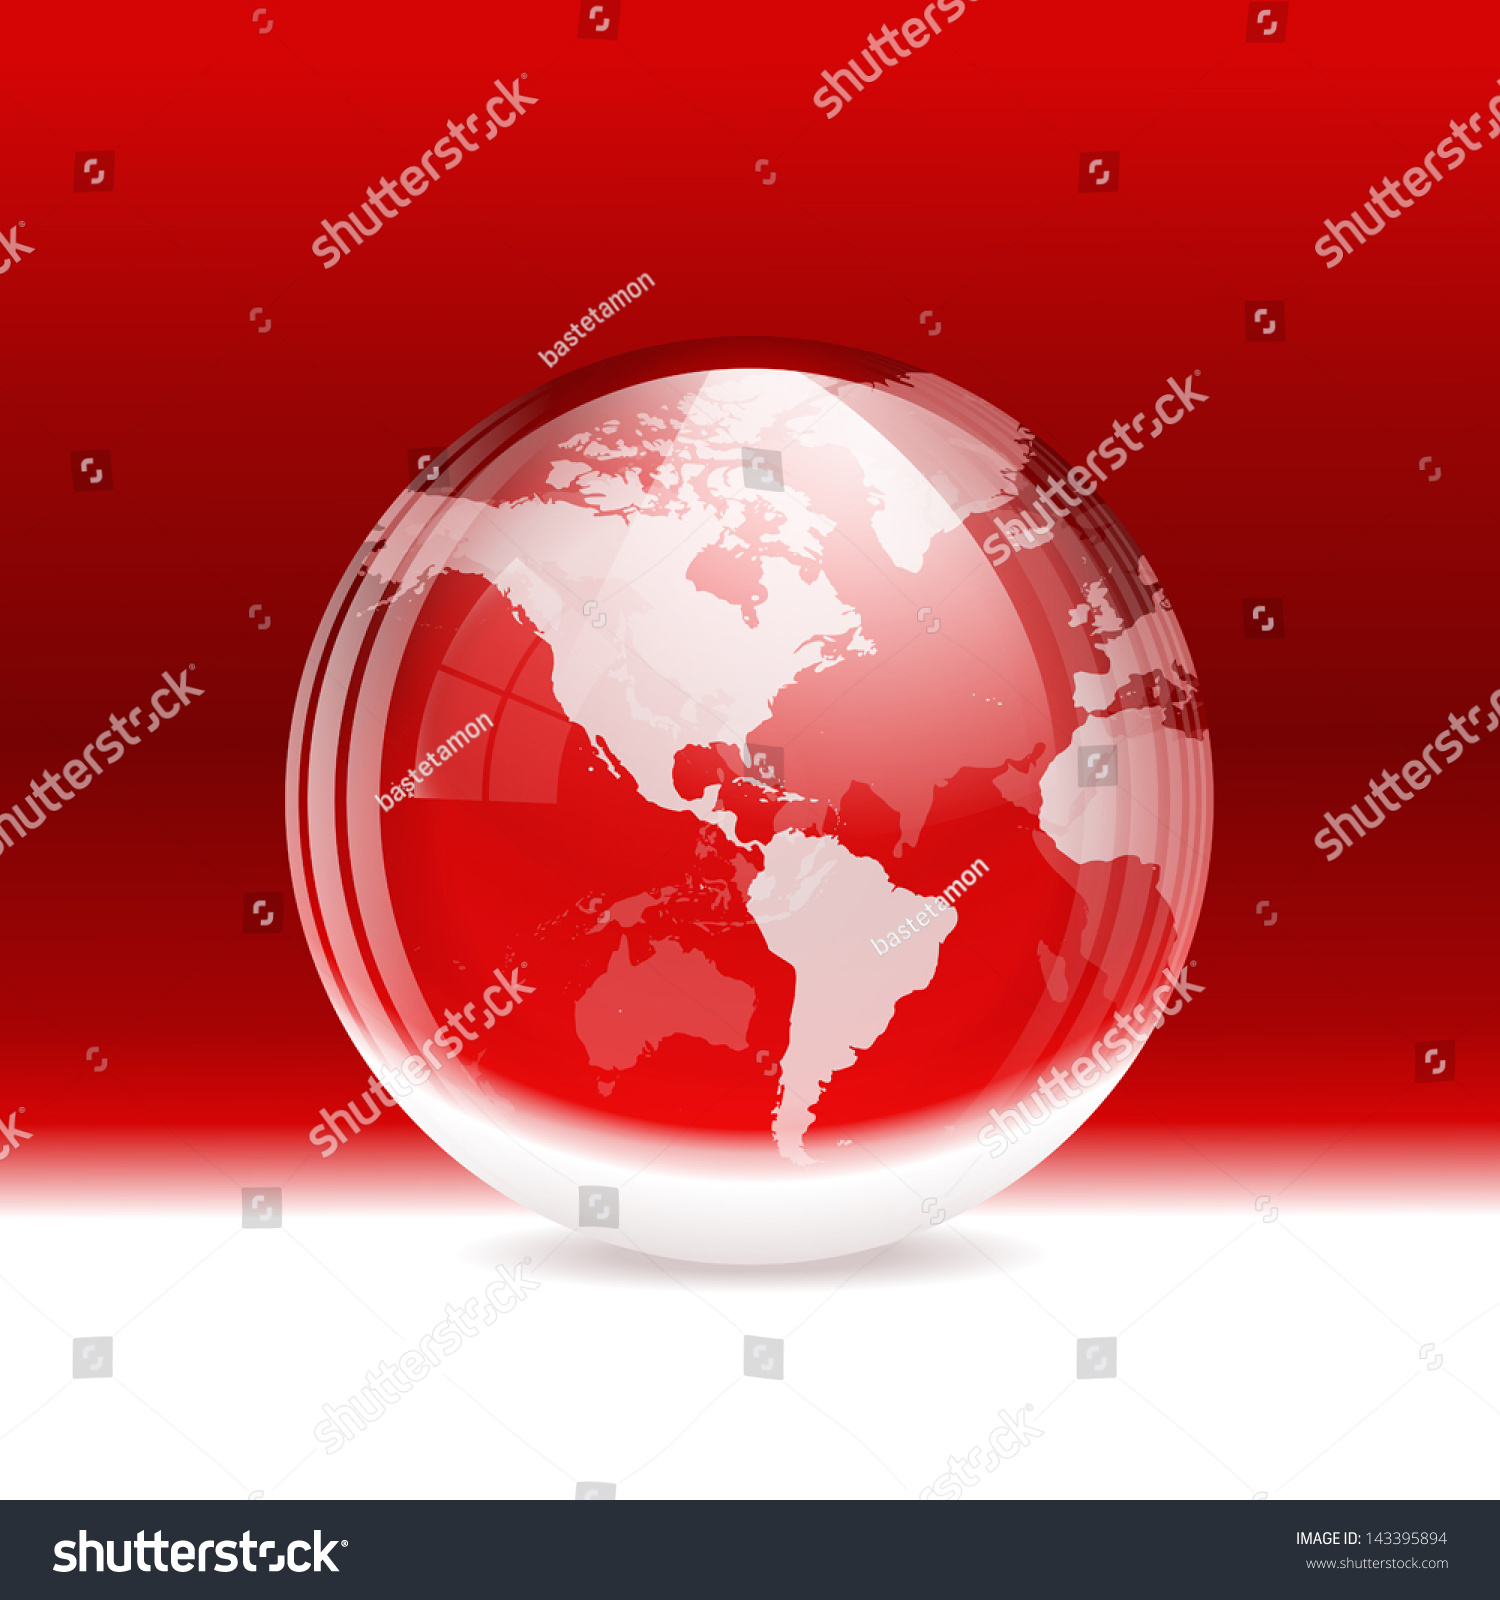 Vector transparent snow globe map layered stock vector 143395894 vector transparent snow globe map layered stock vector 143395894 shutterstock gumiabroncs Images